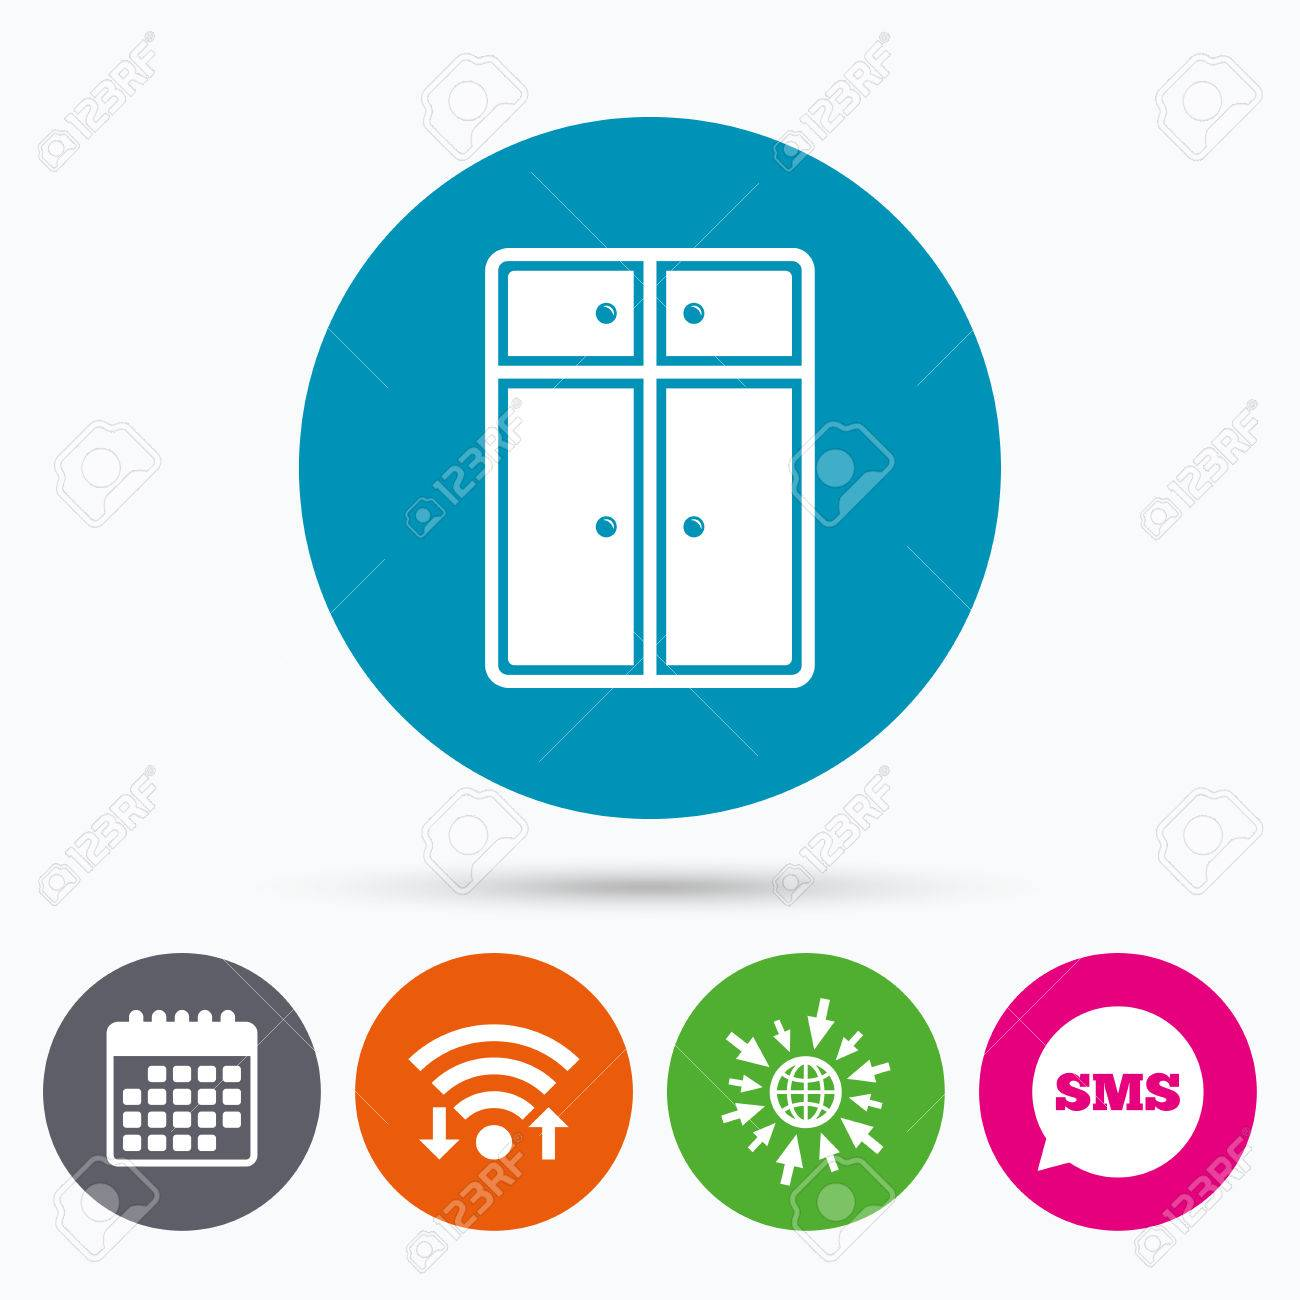 Wifi sms and calendar icons cupboard sign icon modern furniture symbol go